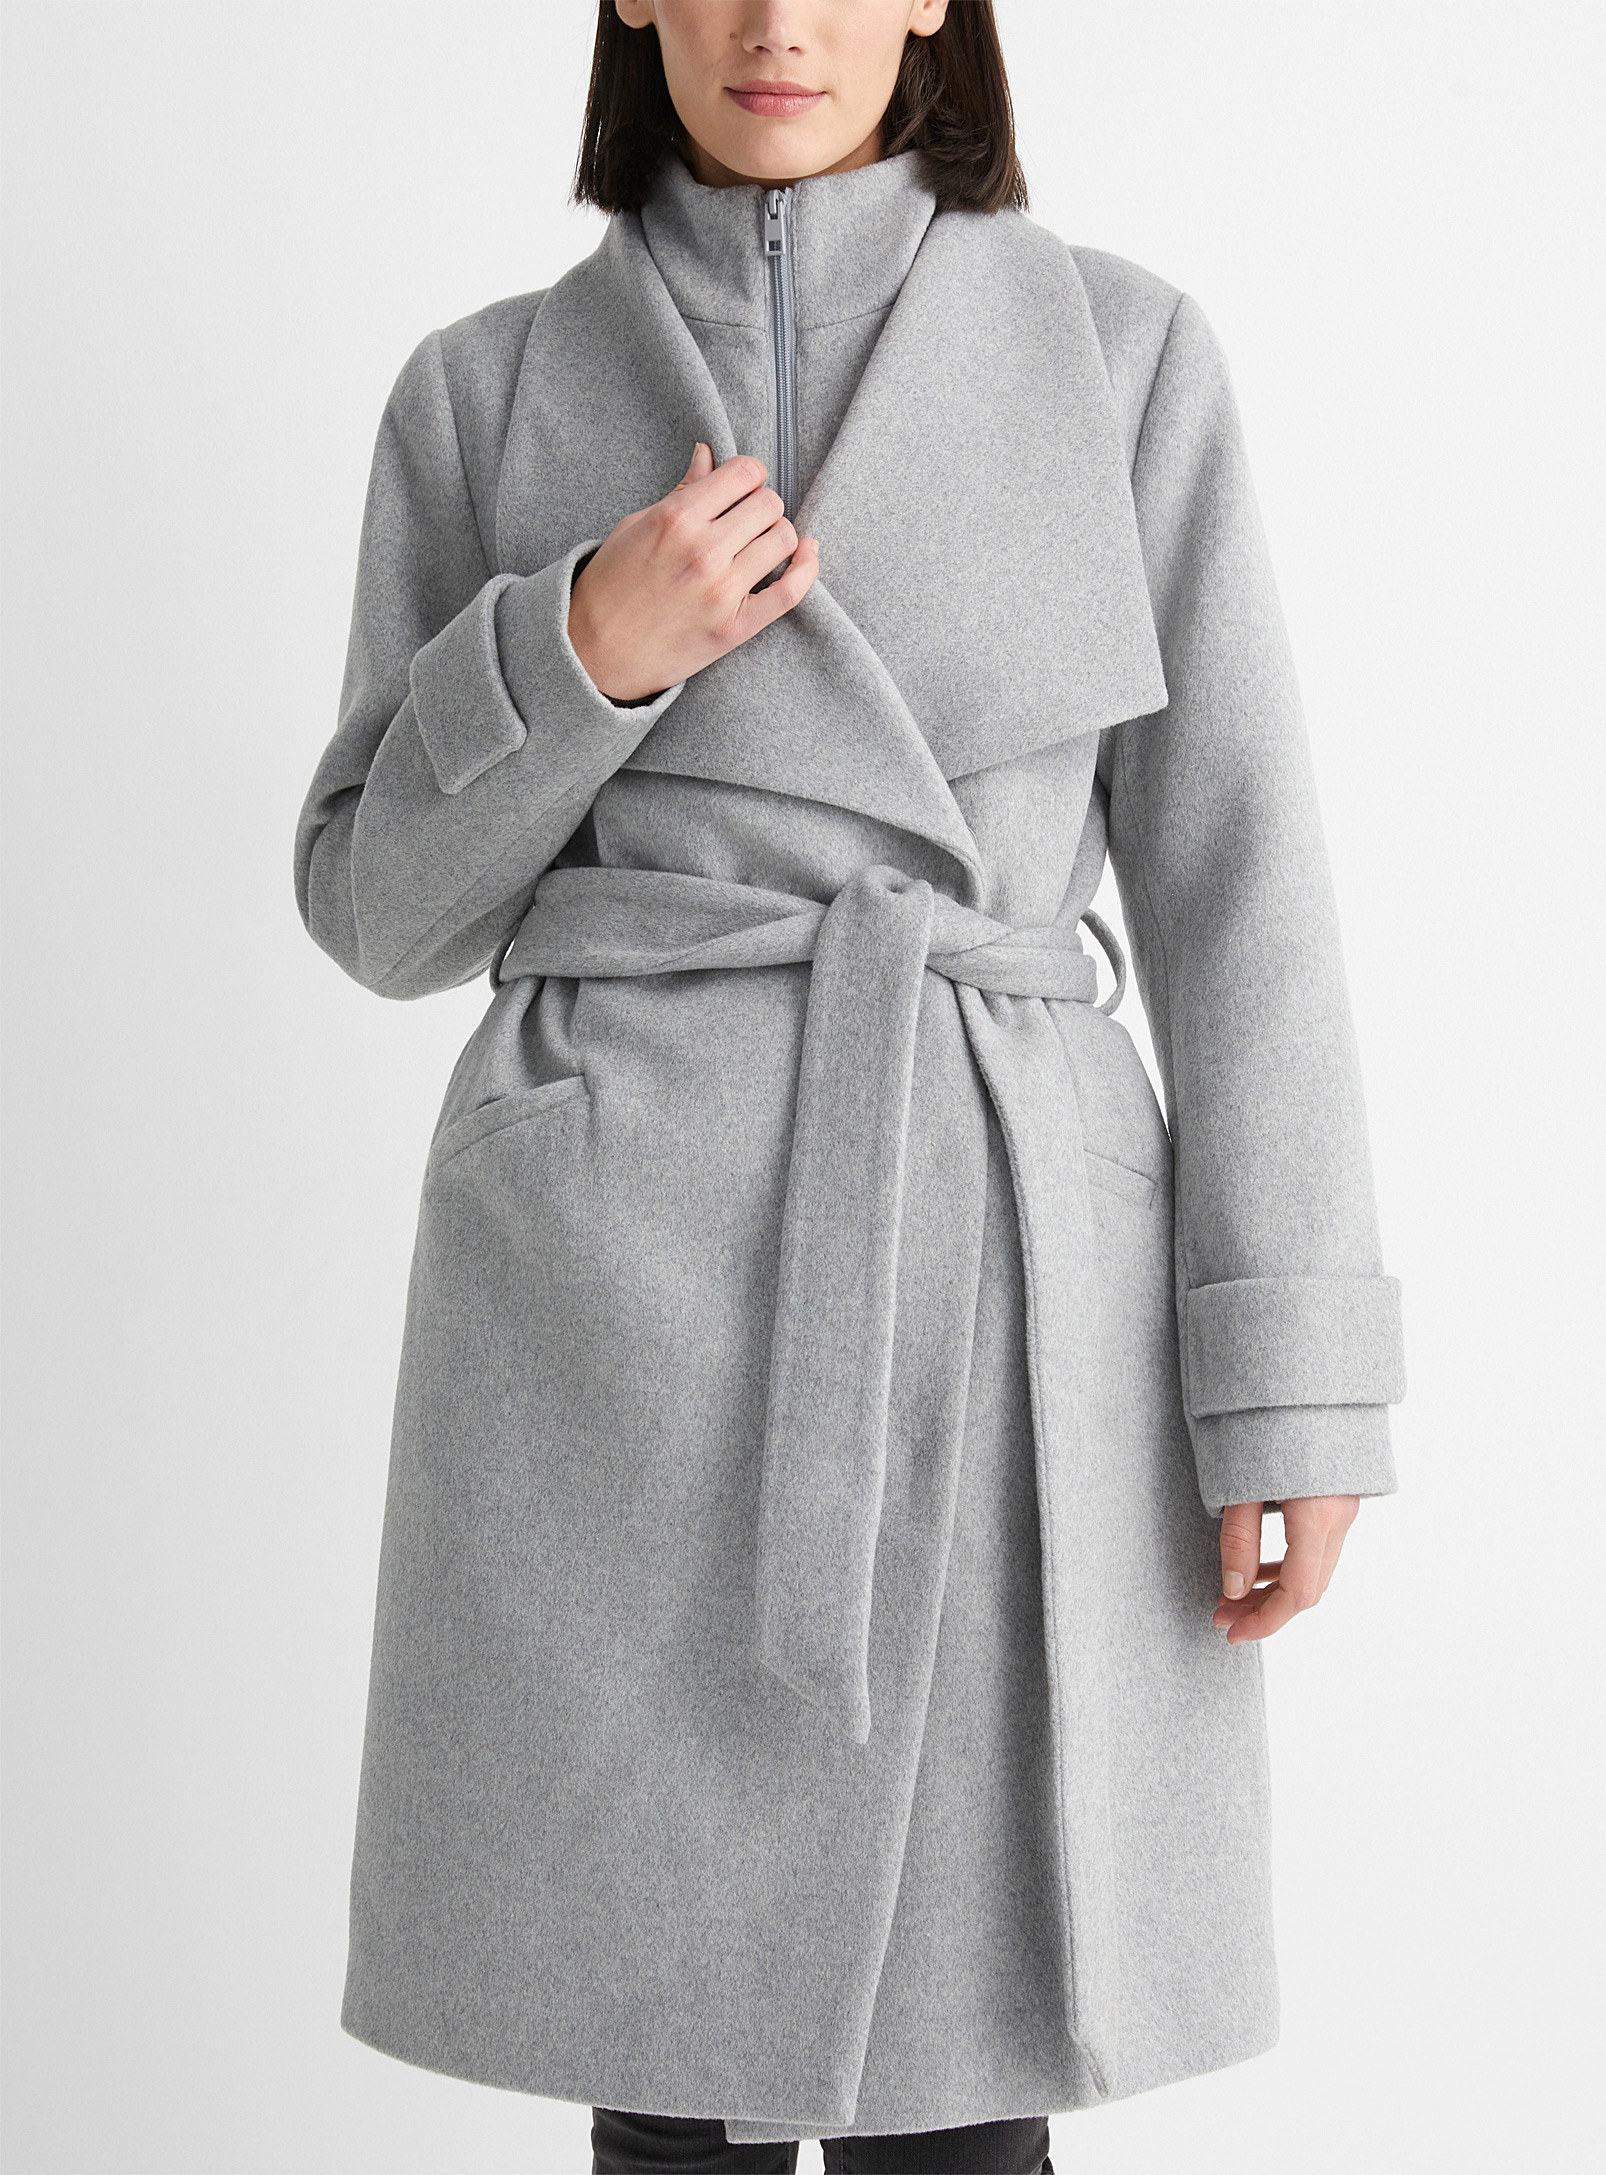 A person wearing a wool coat